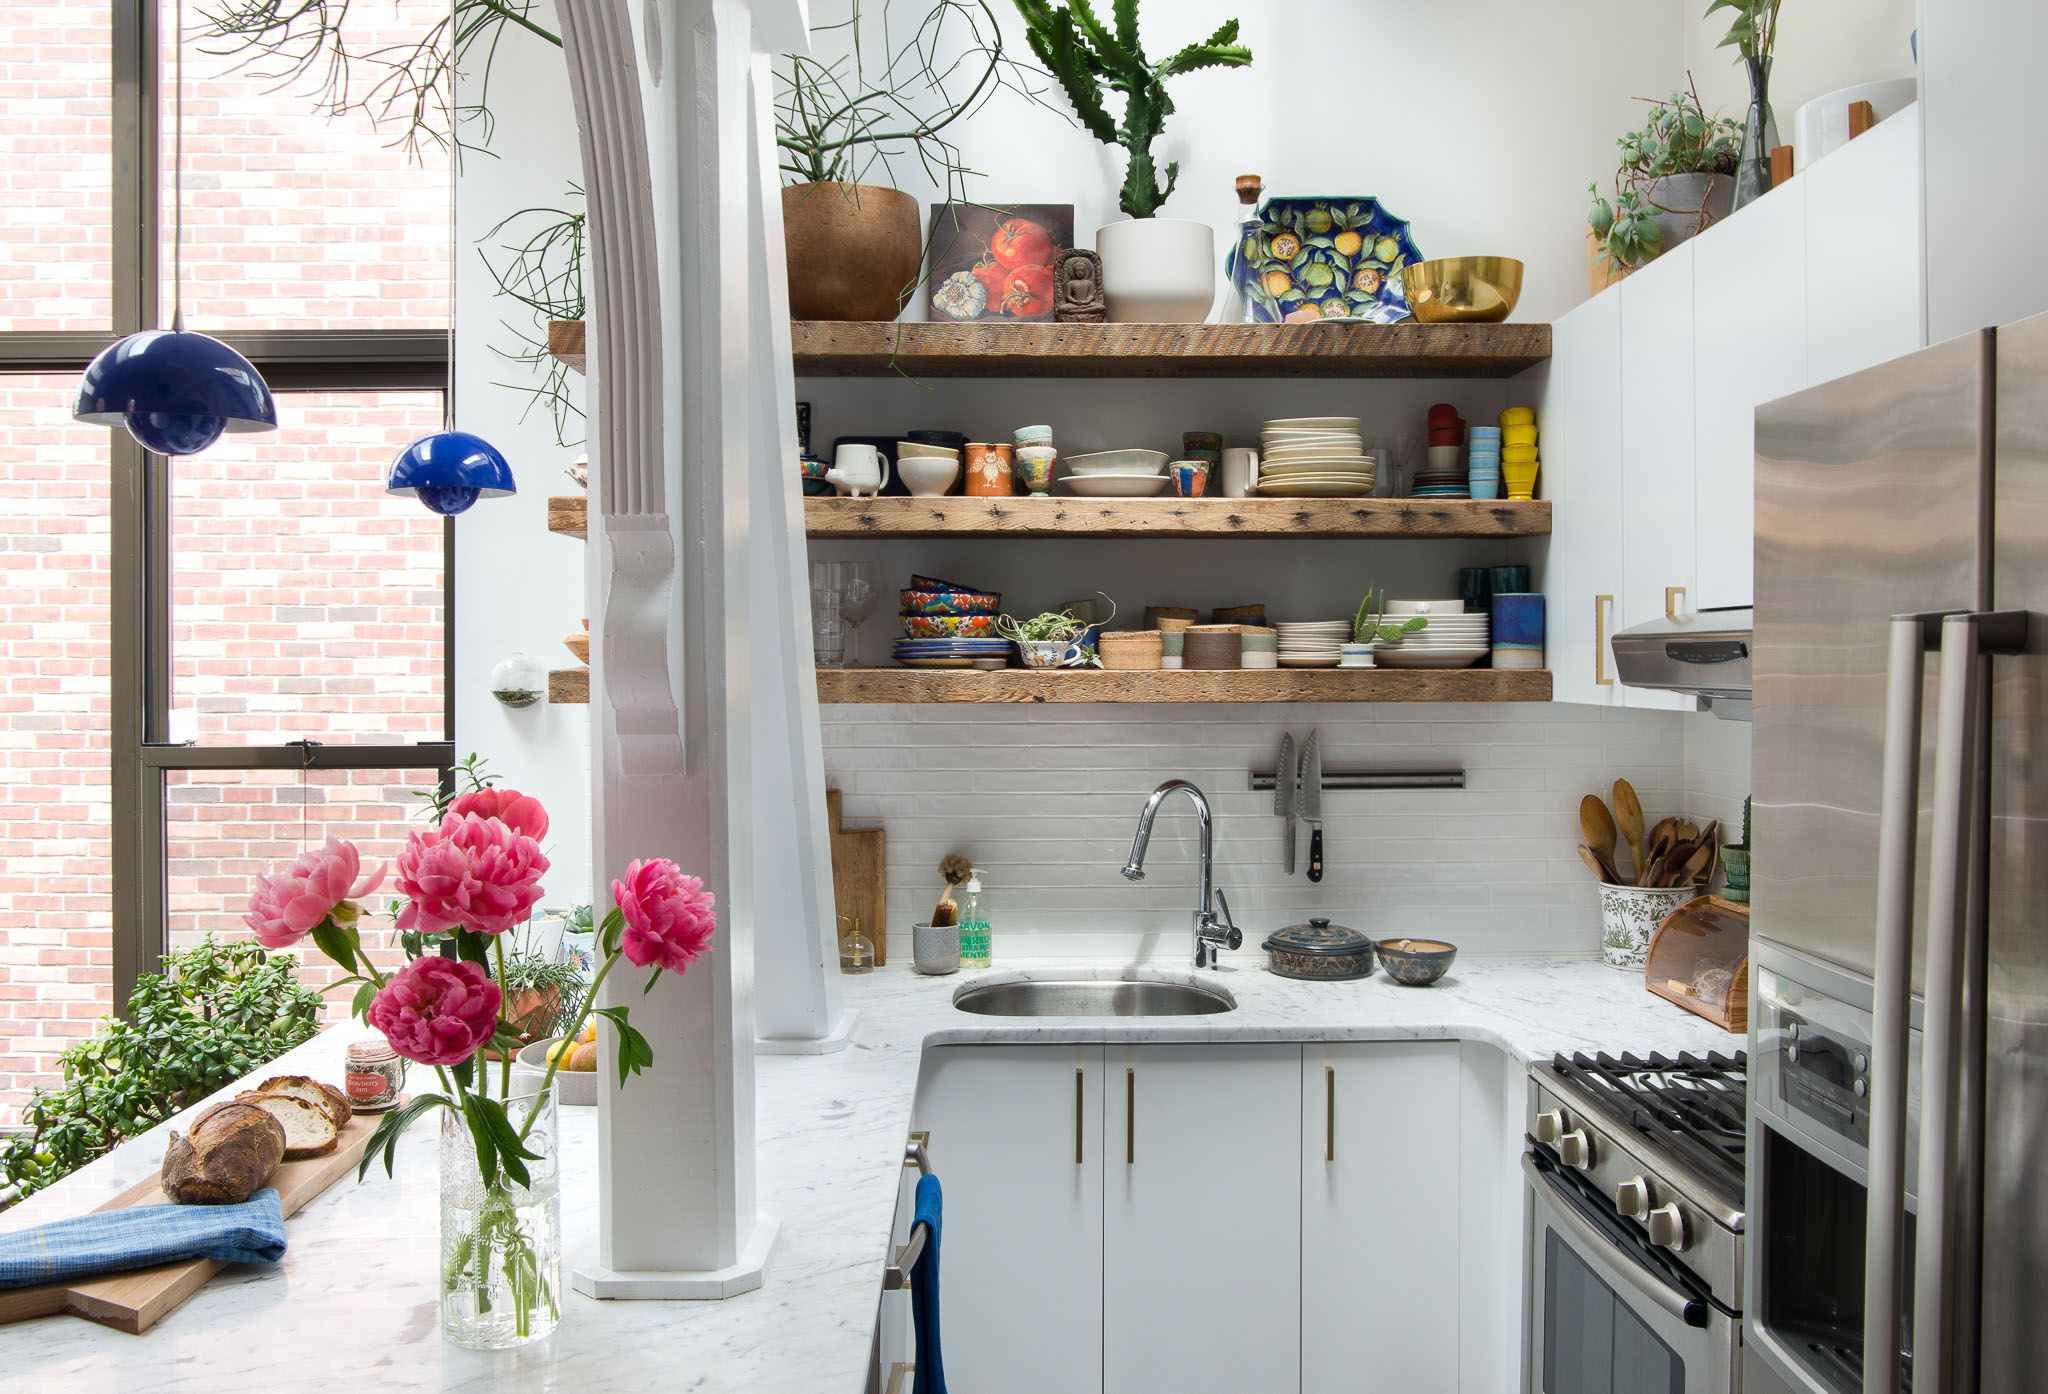 A Heavensent Brooklyn Kitchen Redesign  Kitchens Apartments And Glamorous Brooklyn Kitchen Design Inspiration Design